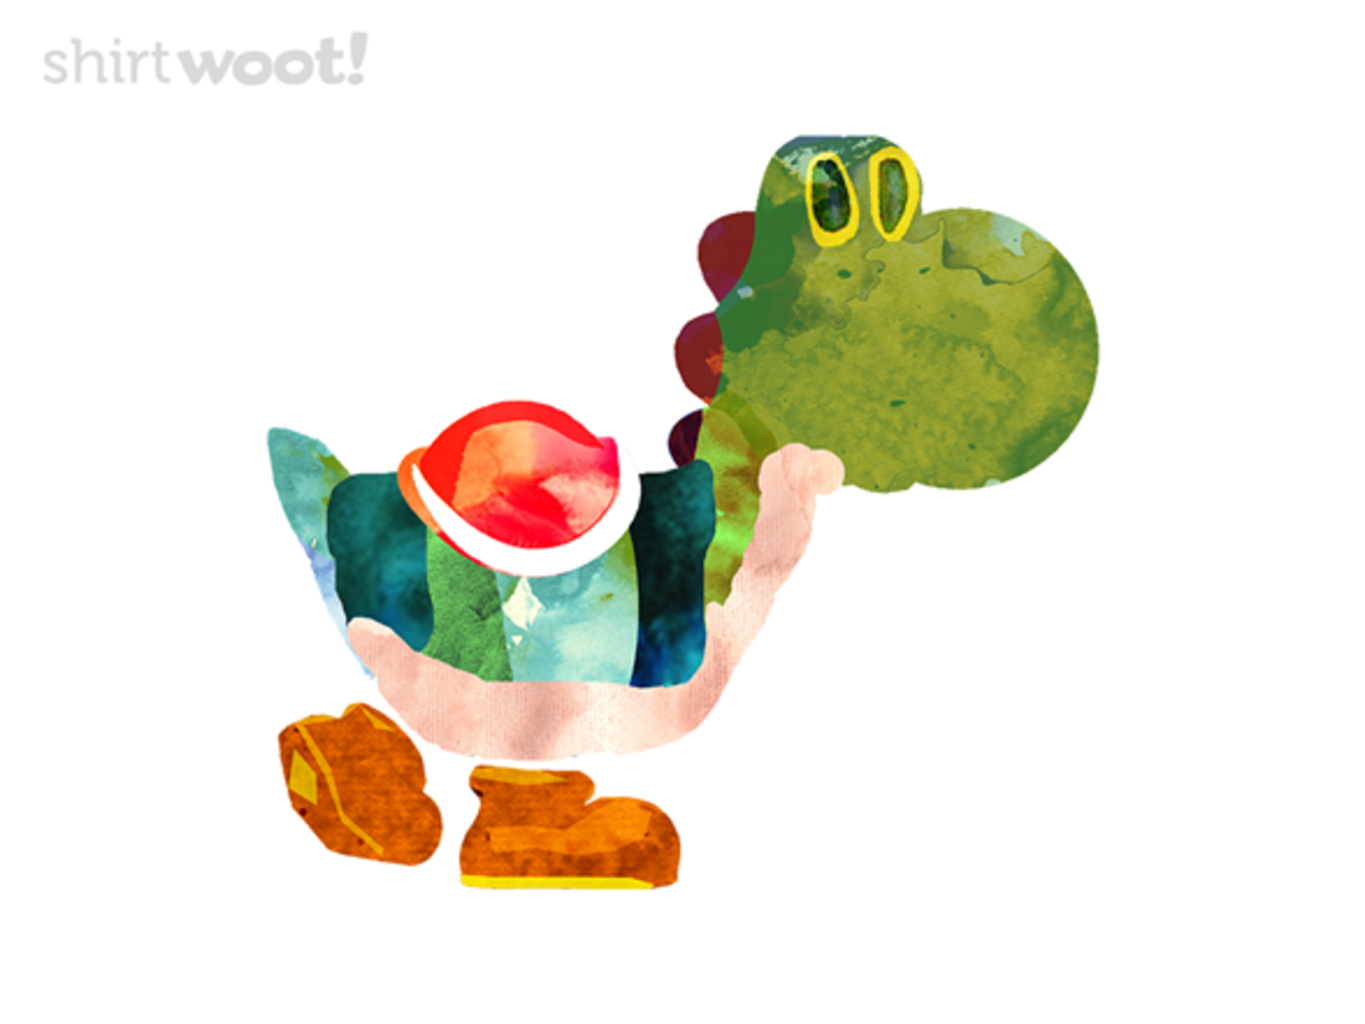 Woot!: The Very Hungry Dinosaur - $15.00 + Free shipping